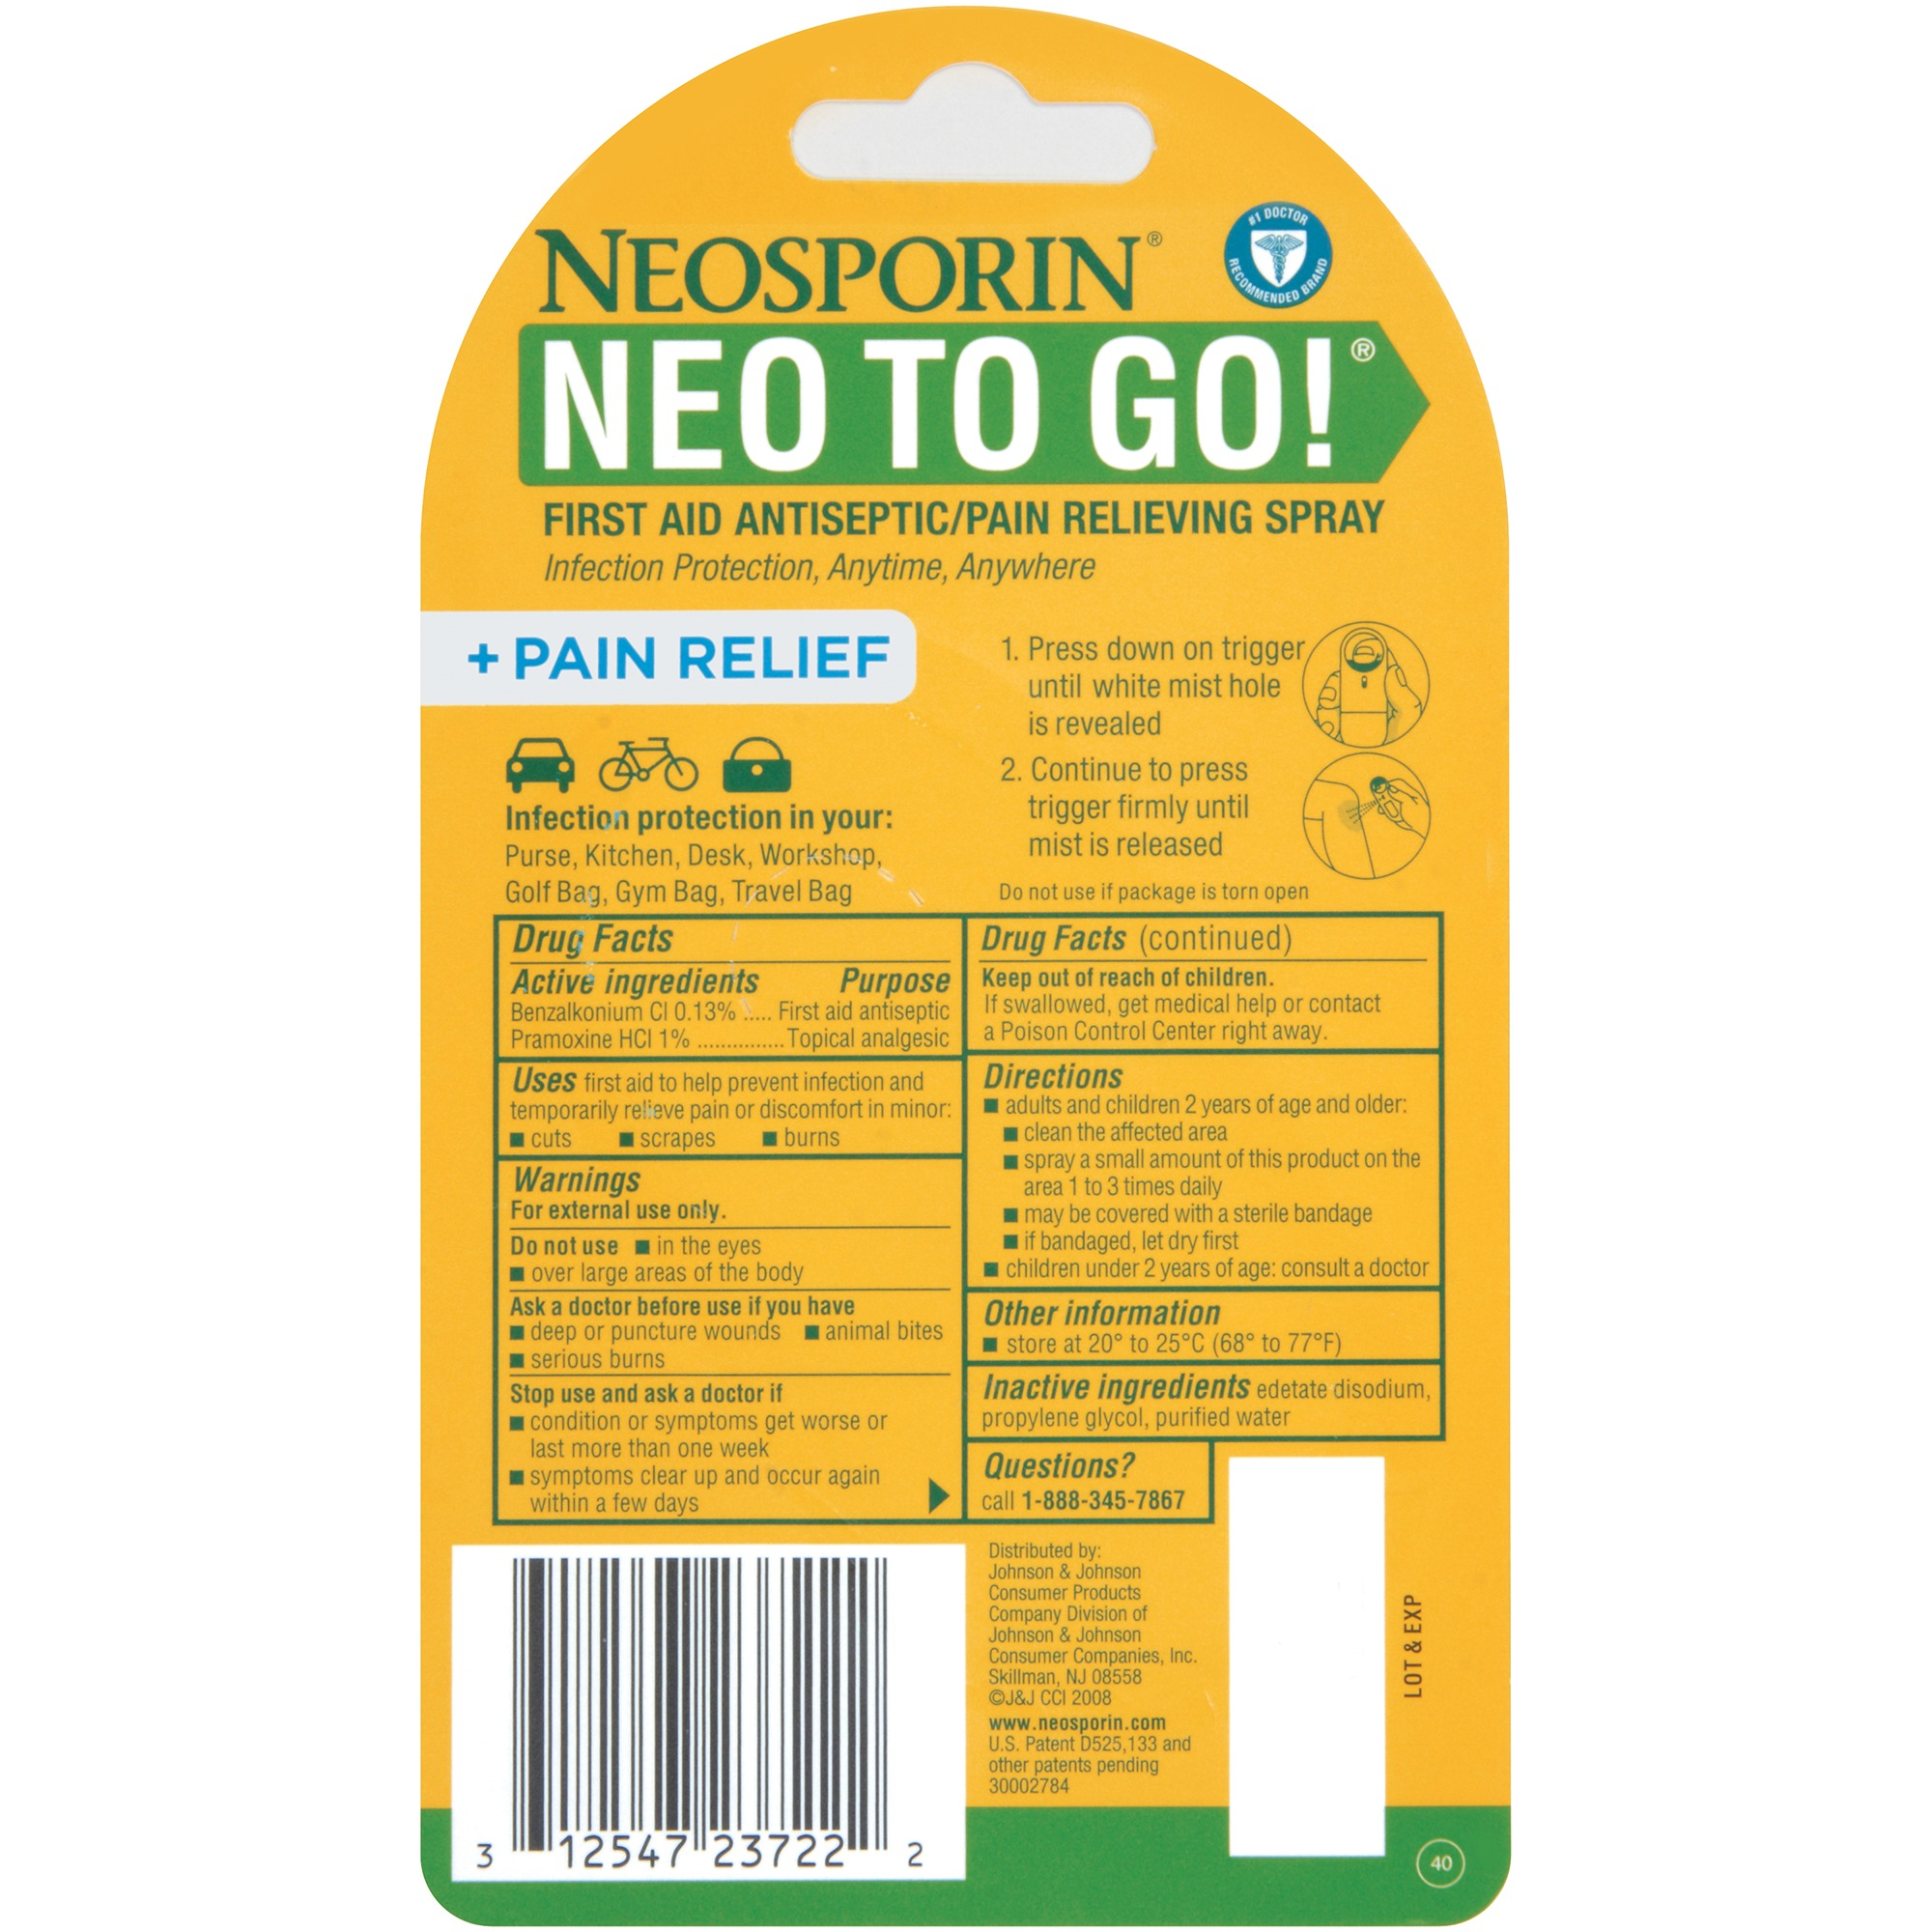 Neosporin + Pain Relief Neo To Go! First Aid Antiseptic/Pain Relieving  Spray, 26 Oz